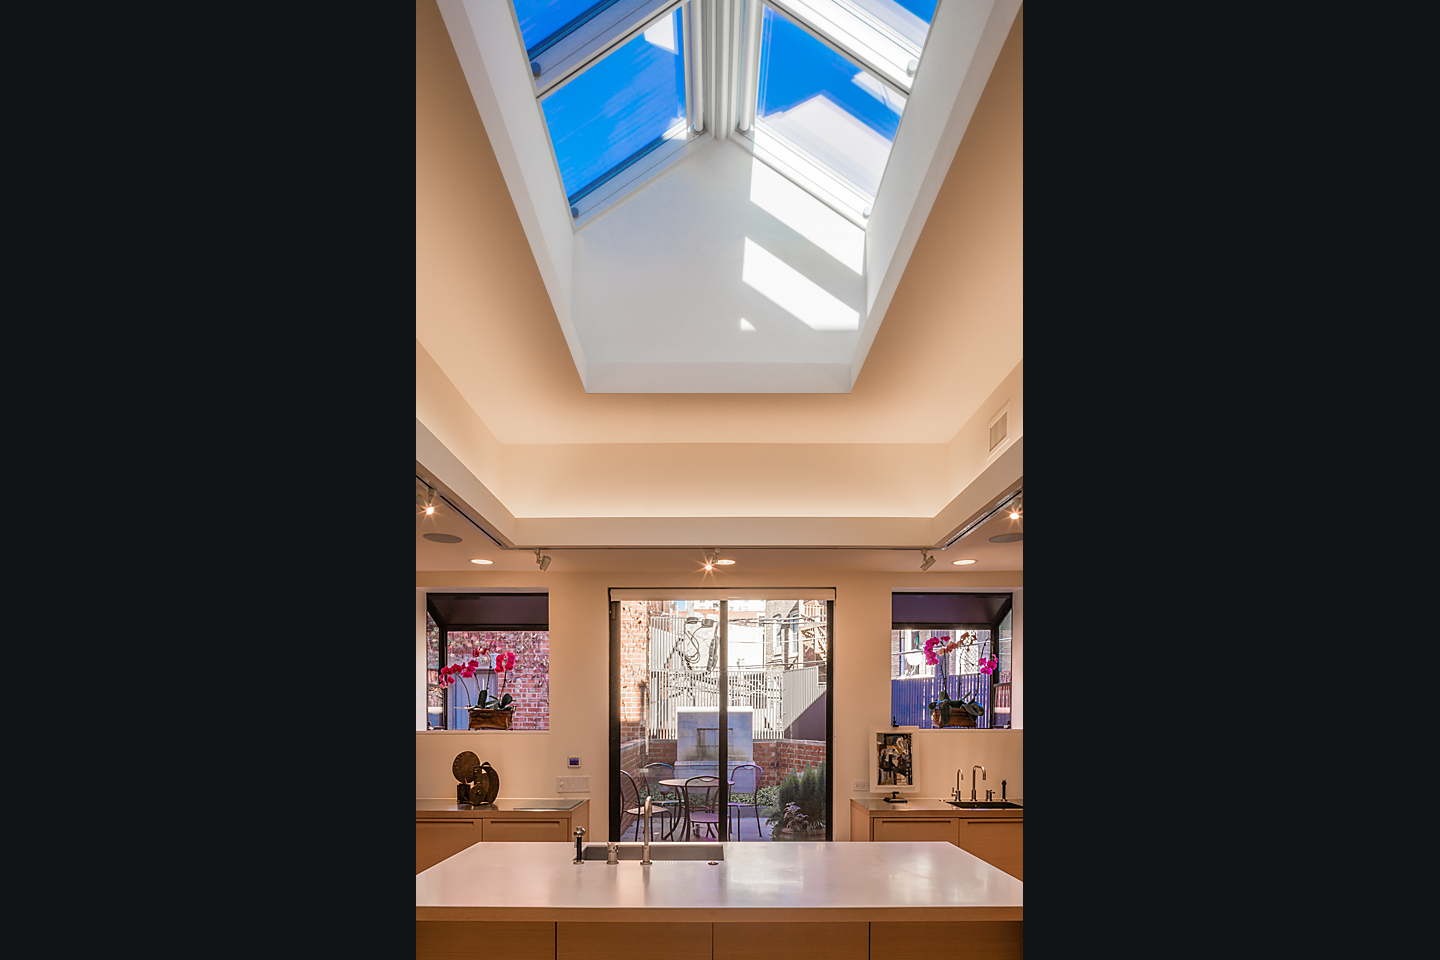 luxury kitchen remodel featuring massive commercial skylight, photographed by Jacob Rosenfeld Photography